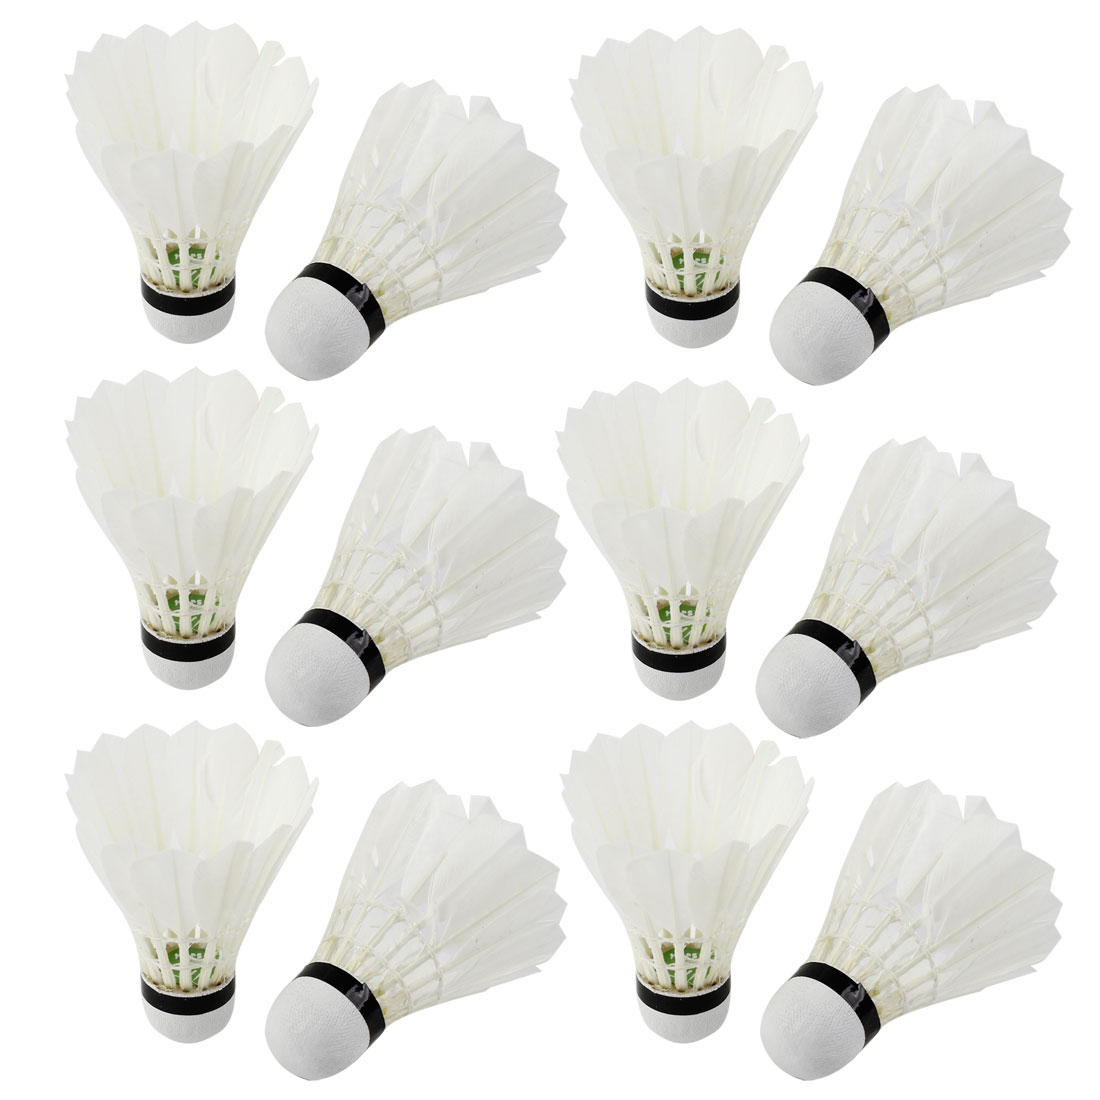 Outdoor Sports Gym Athletic Training Badminton White Goose Feather Foam Bottom Shuttlecocks 12pcs